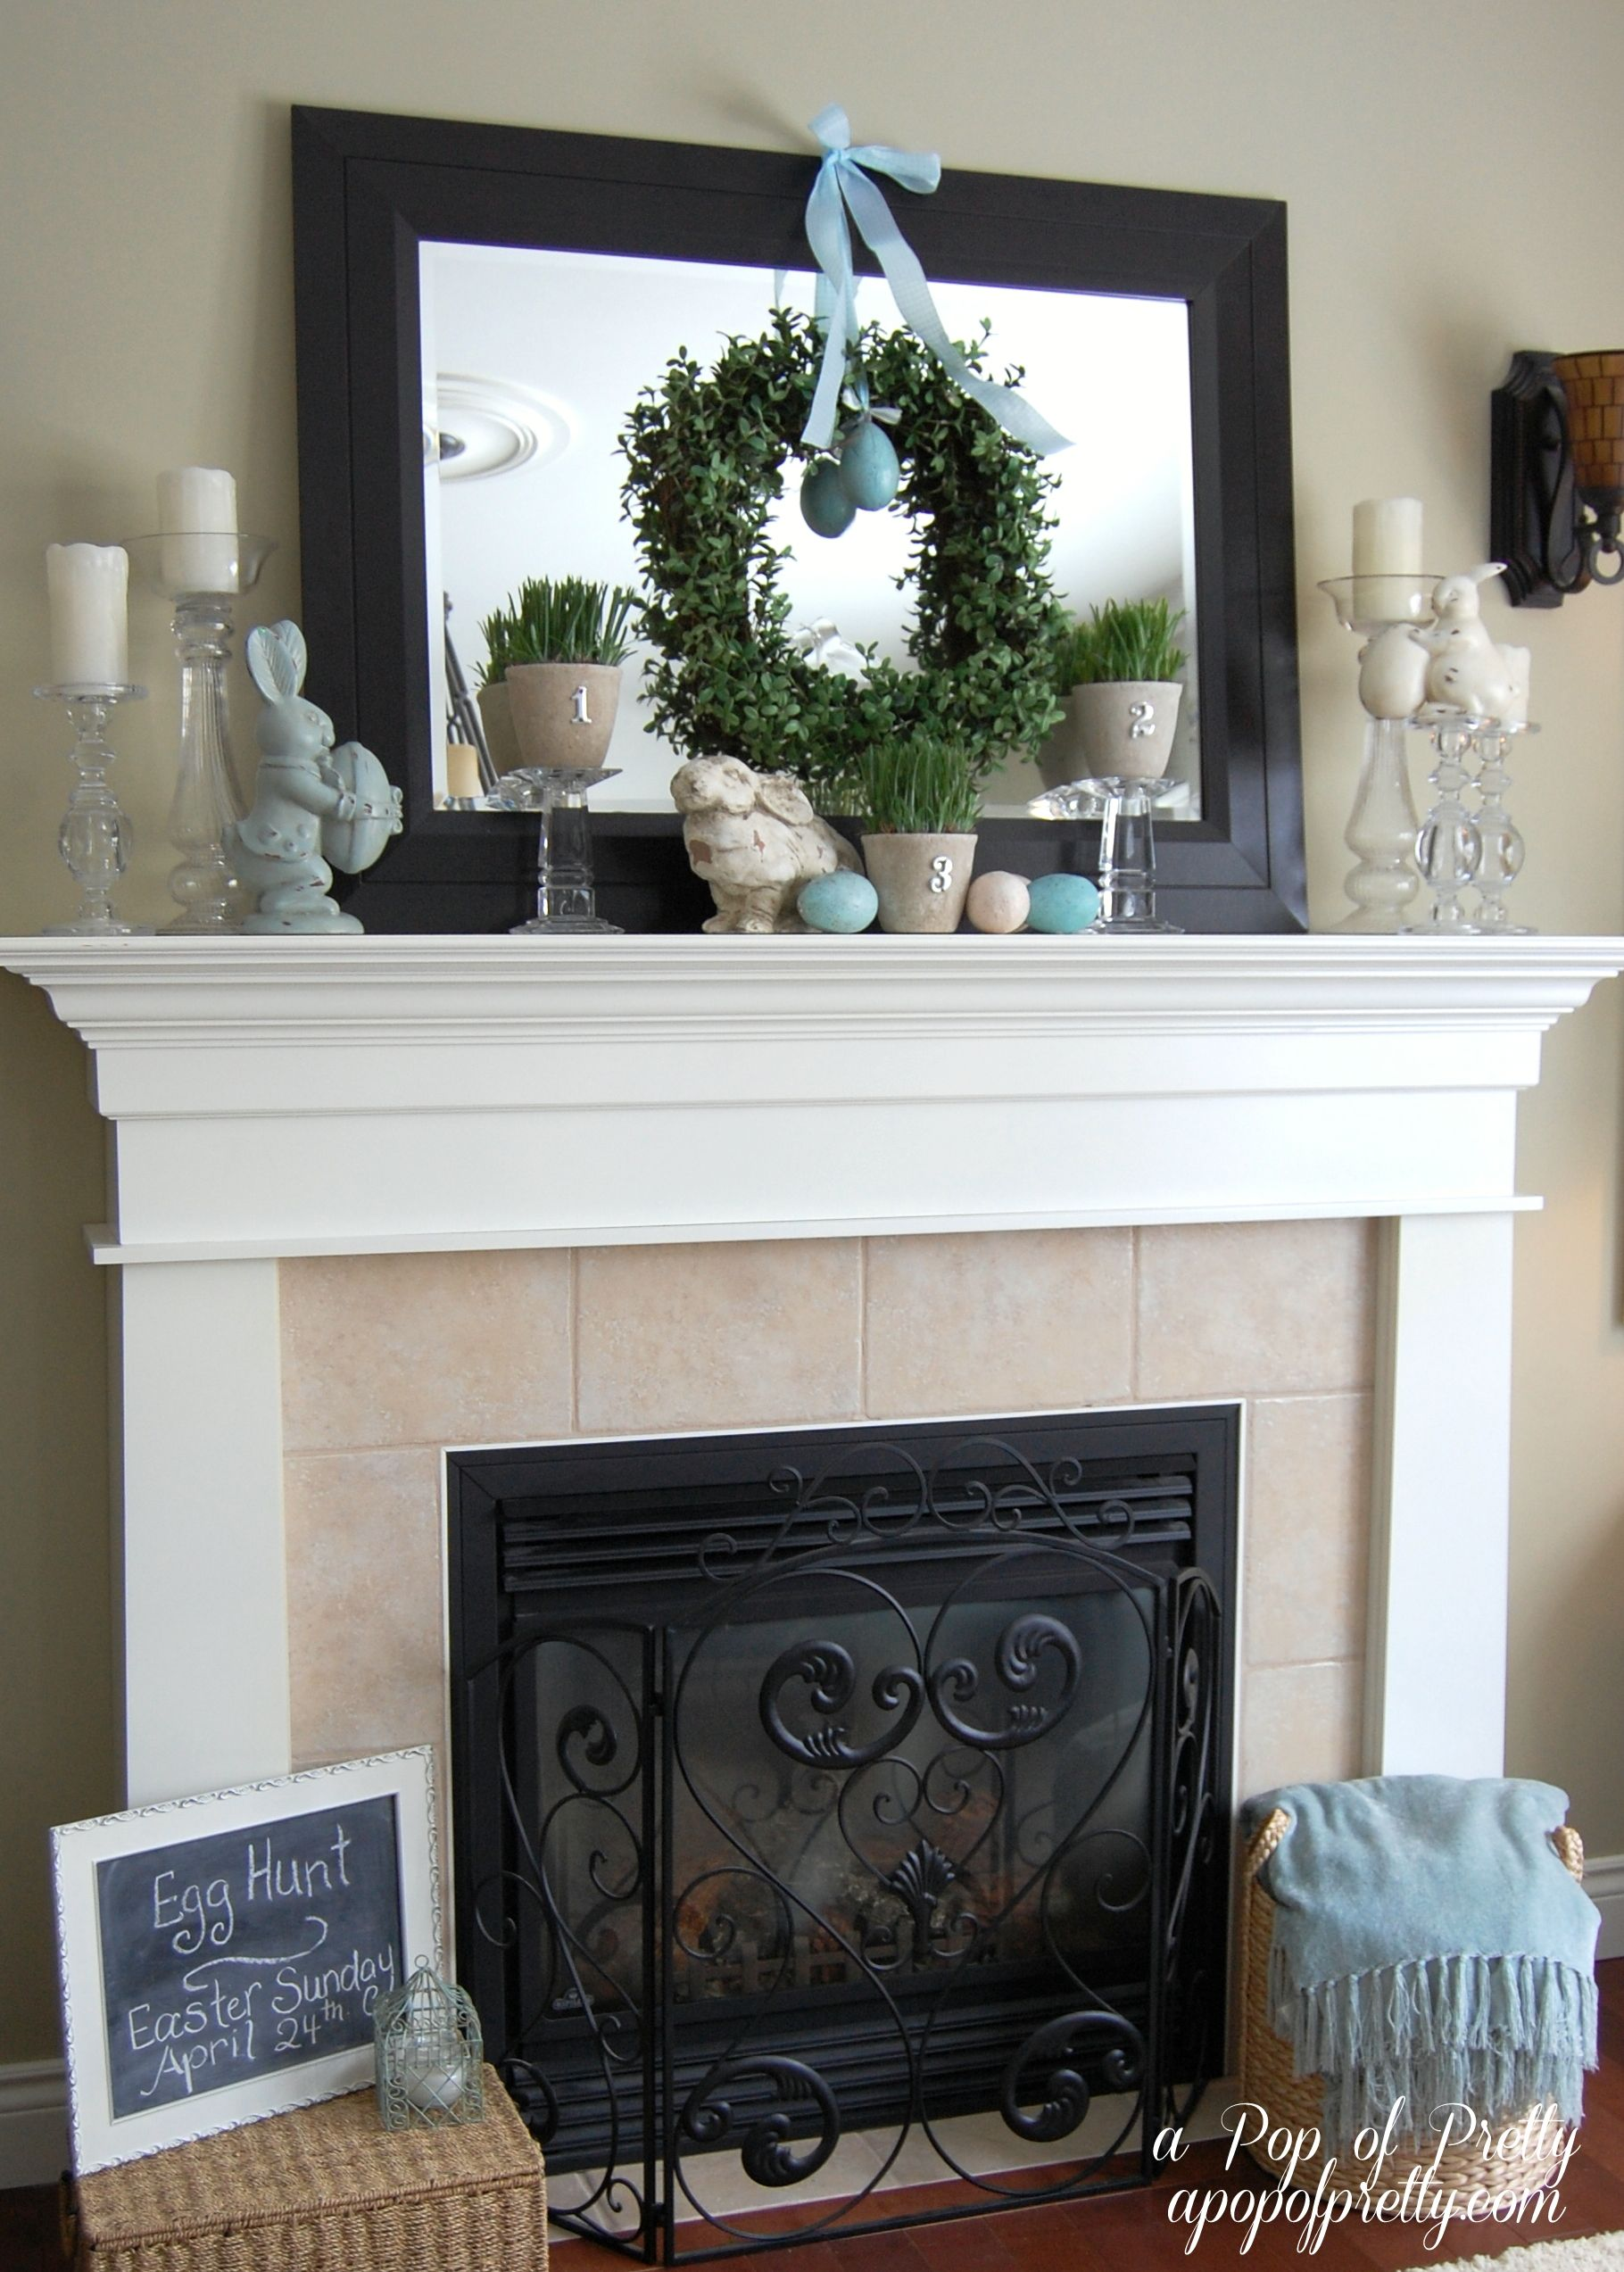 Easter Decorating Ideas - Mantel 2011 | An, Teal blue and Easter decor